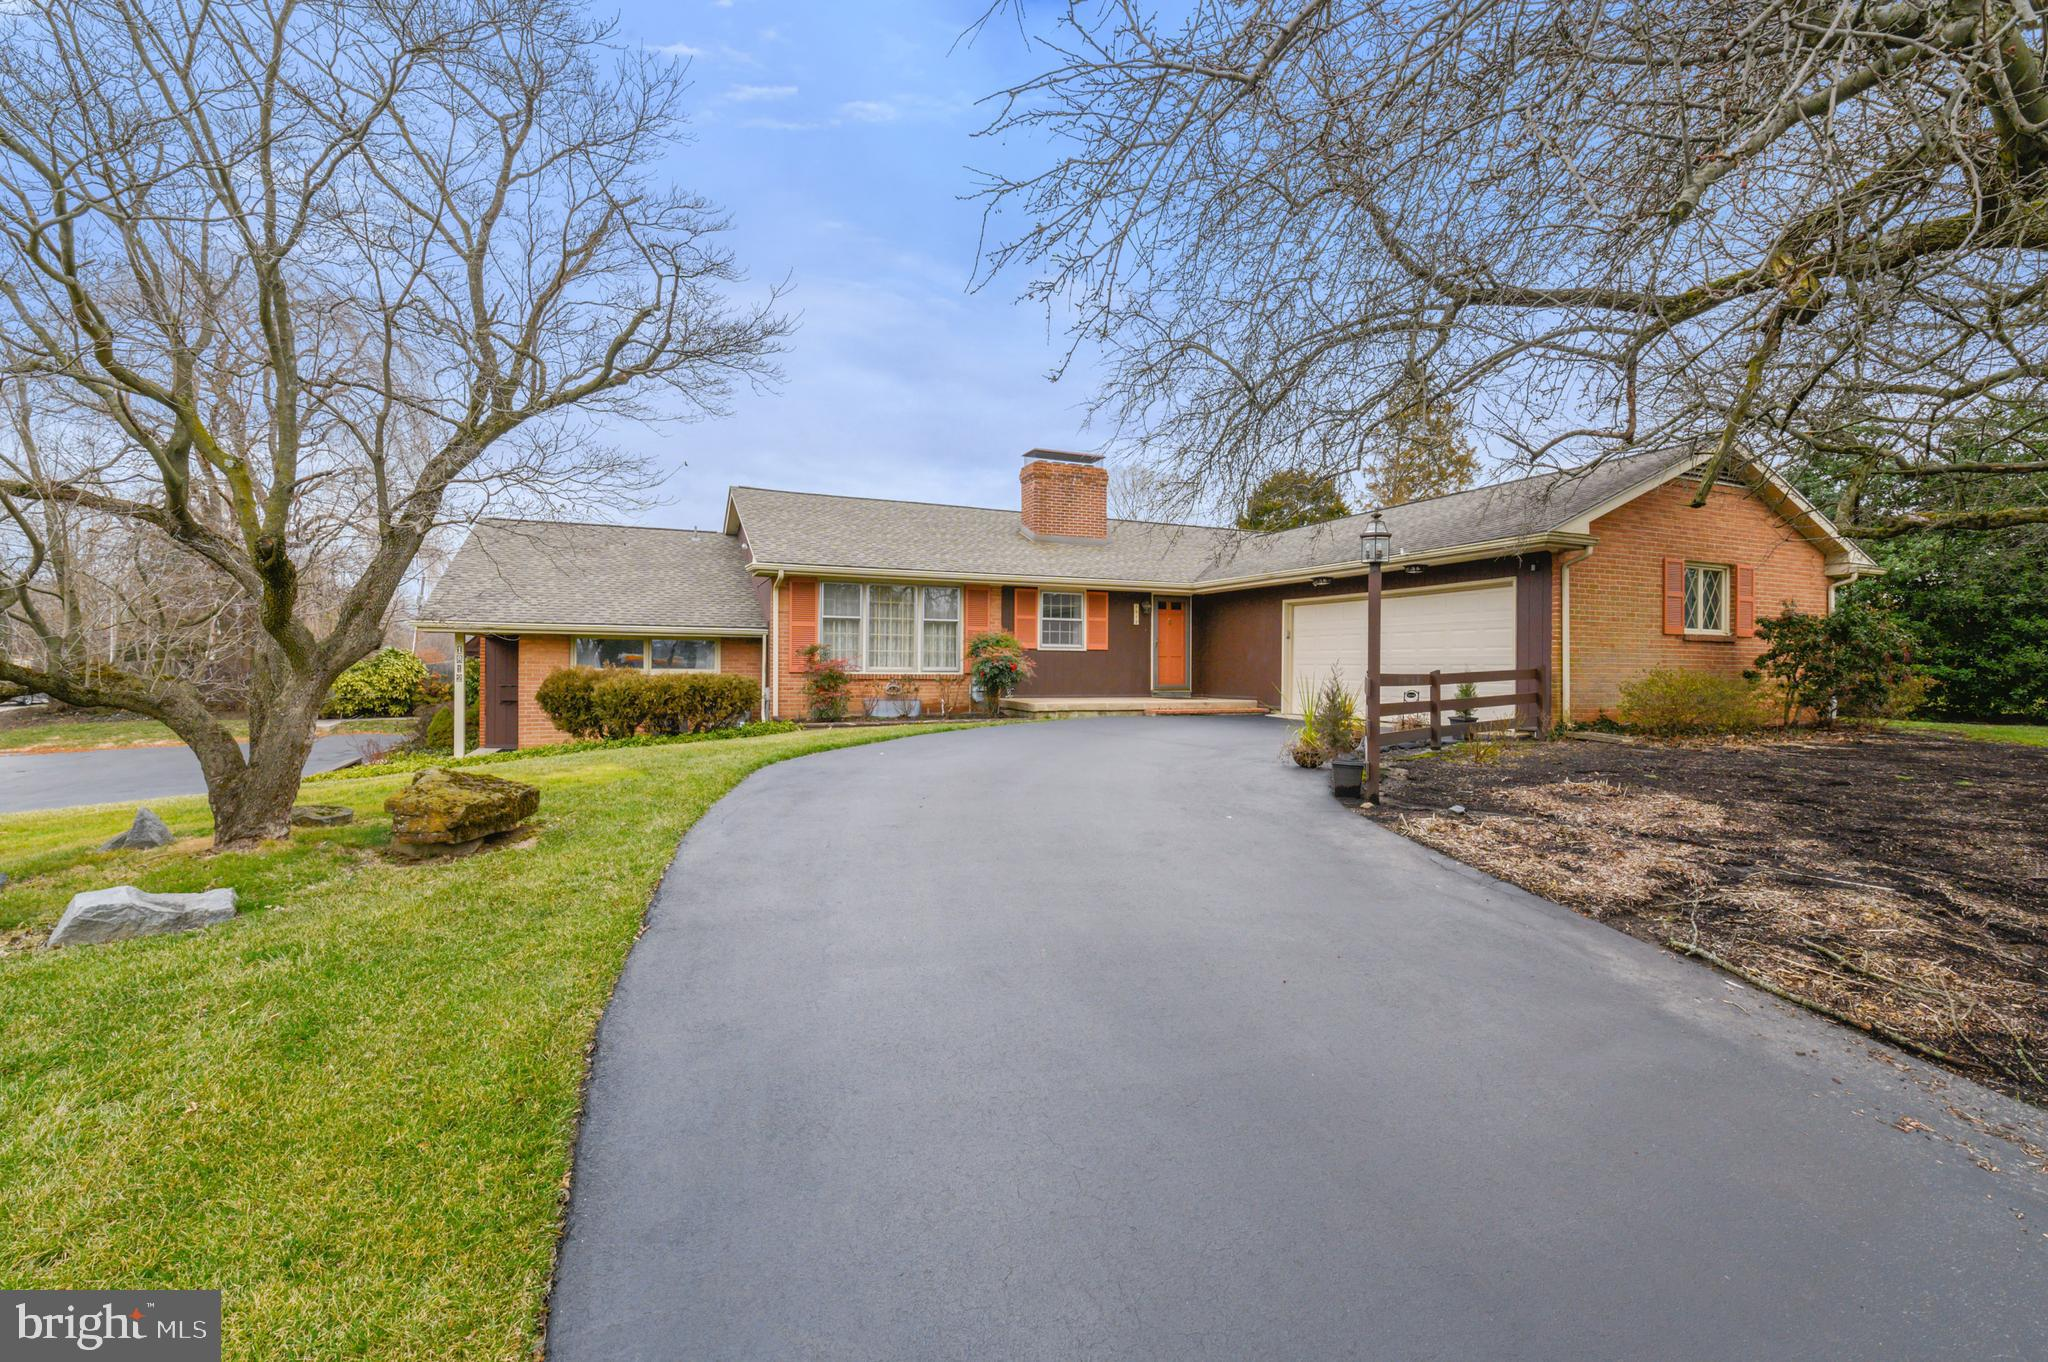 """$10,000 Buyer Credit available for an accepted offer on or before 06/24/2020.  ----   The perfect layout for our """"Work at Home"""" world! Has it been a challenge for you and your family to adapt to working from home? Would you like to have a bit more privacy, peace and quiet while you work? This home's distinctive 5-room attached office space can provide it all. Even better? This sprawling ranch is """"priced to sell"""" and one of the best values per square foot on the market in greater Wilmington. You can live and work at the same location, or transform the office space into an expansive in-law suite, guest house or teenage retreat. The possibilities are endless! Picture this: You grab your morning coffee from the kitchen and make your commute by heading down 6 steps to your attached sun-lit workspace. Your office boasts its own exterior entrance door, porch, half bath and 5 parking spaces conveniently located on Foulk Road. Your attached home has its own driveway off Lanside Drive, immaculate hardwood floors, 2 wood-burning fireplaces and a spacious Four Seasons room. Incredibly unique and well-maintained, this home is just waiting for your personal touch."""